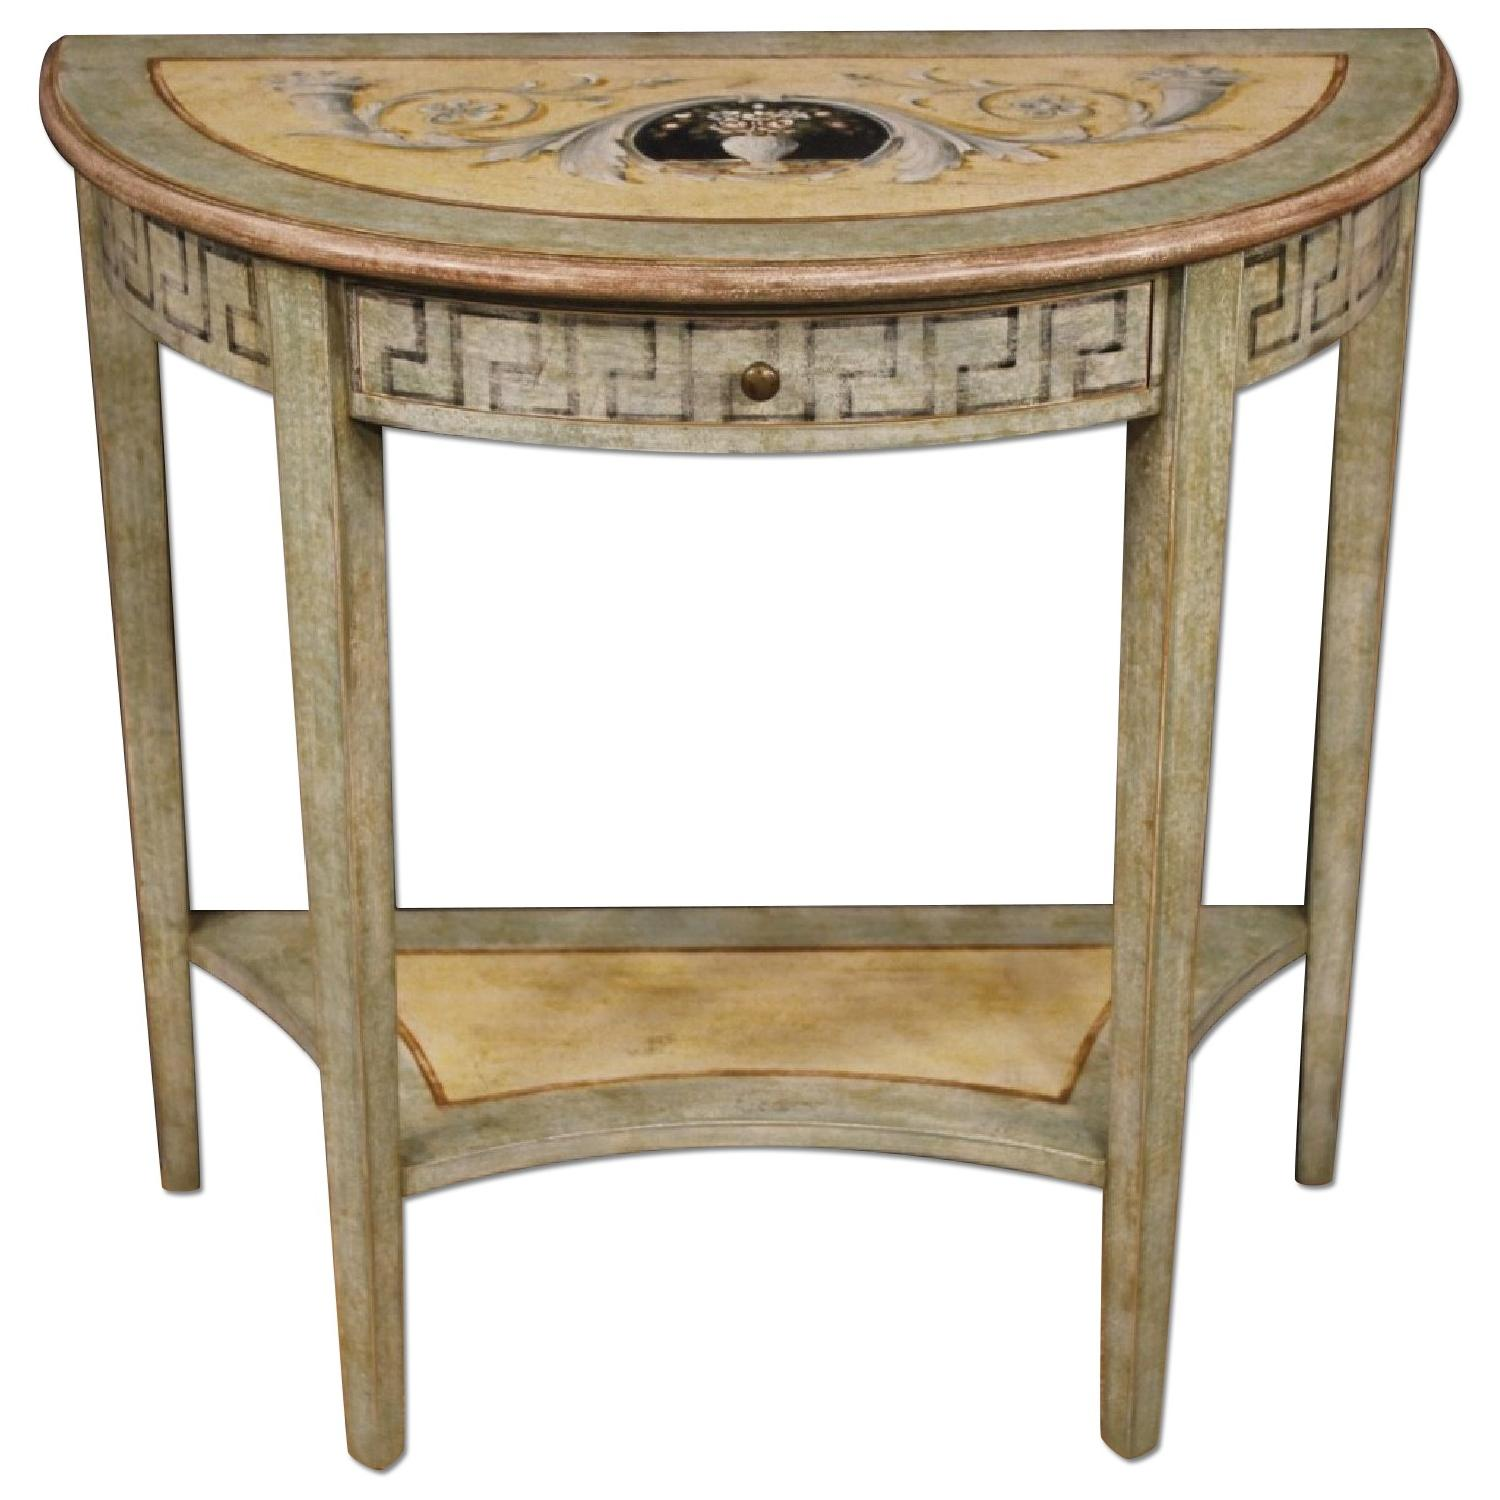 Louis XVI Style Italian Console in Lacquered Painted Wood